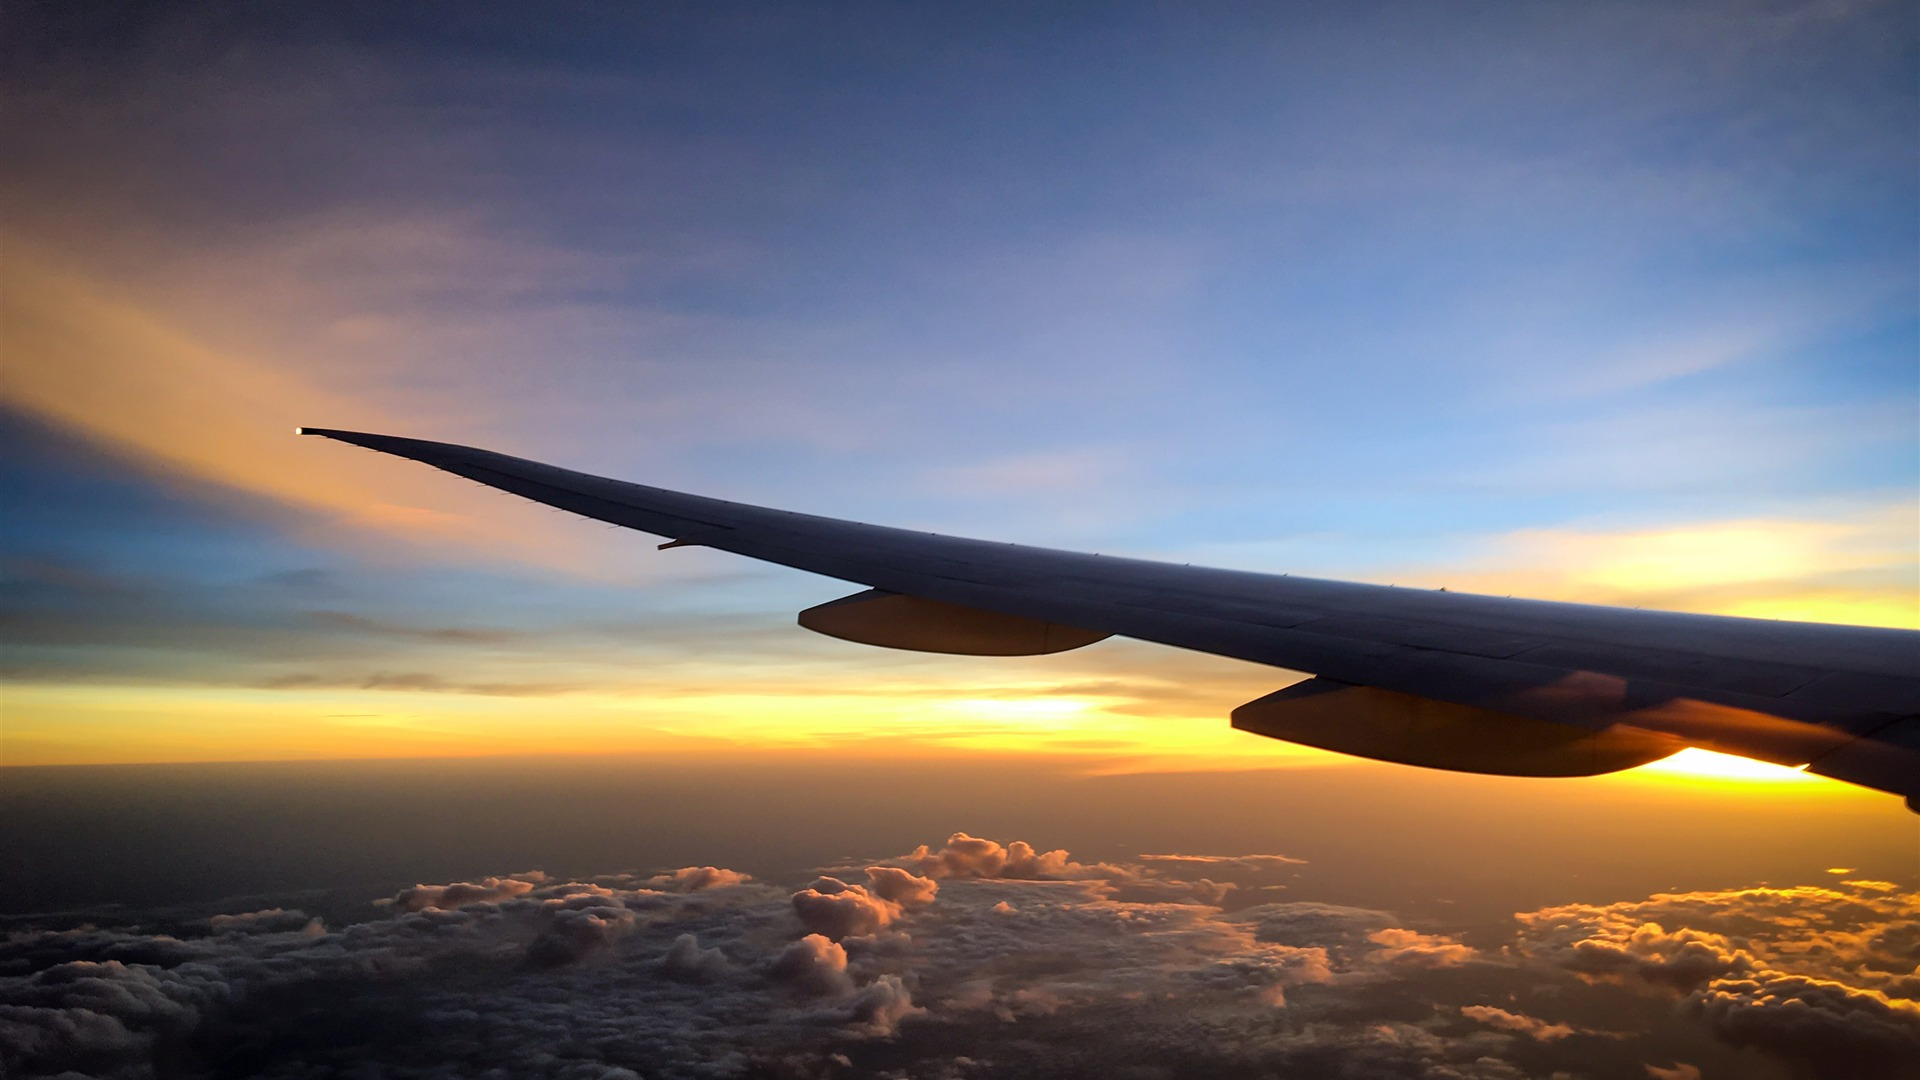 Airplane sunset landscape HD picture 1080p